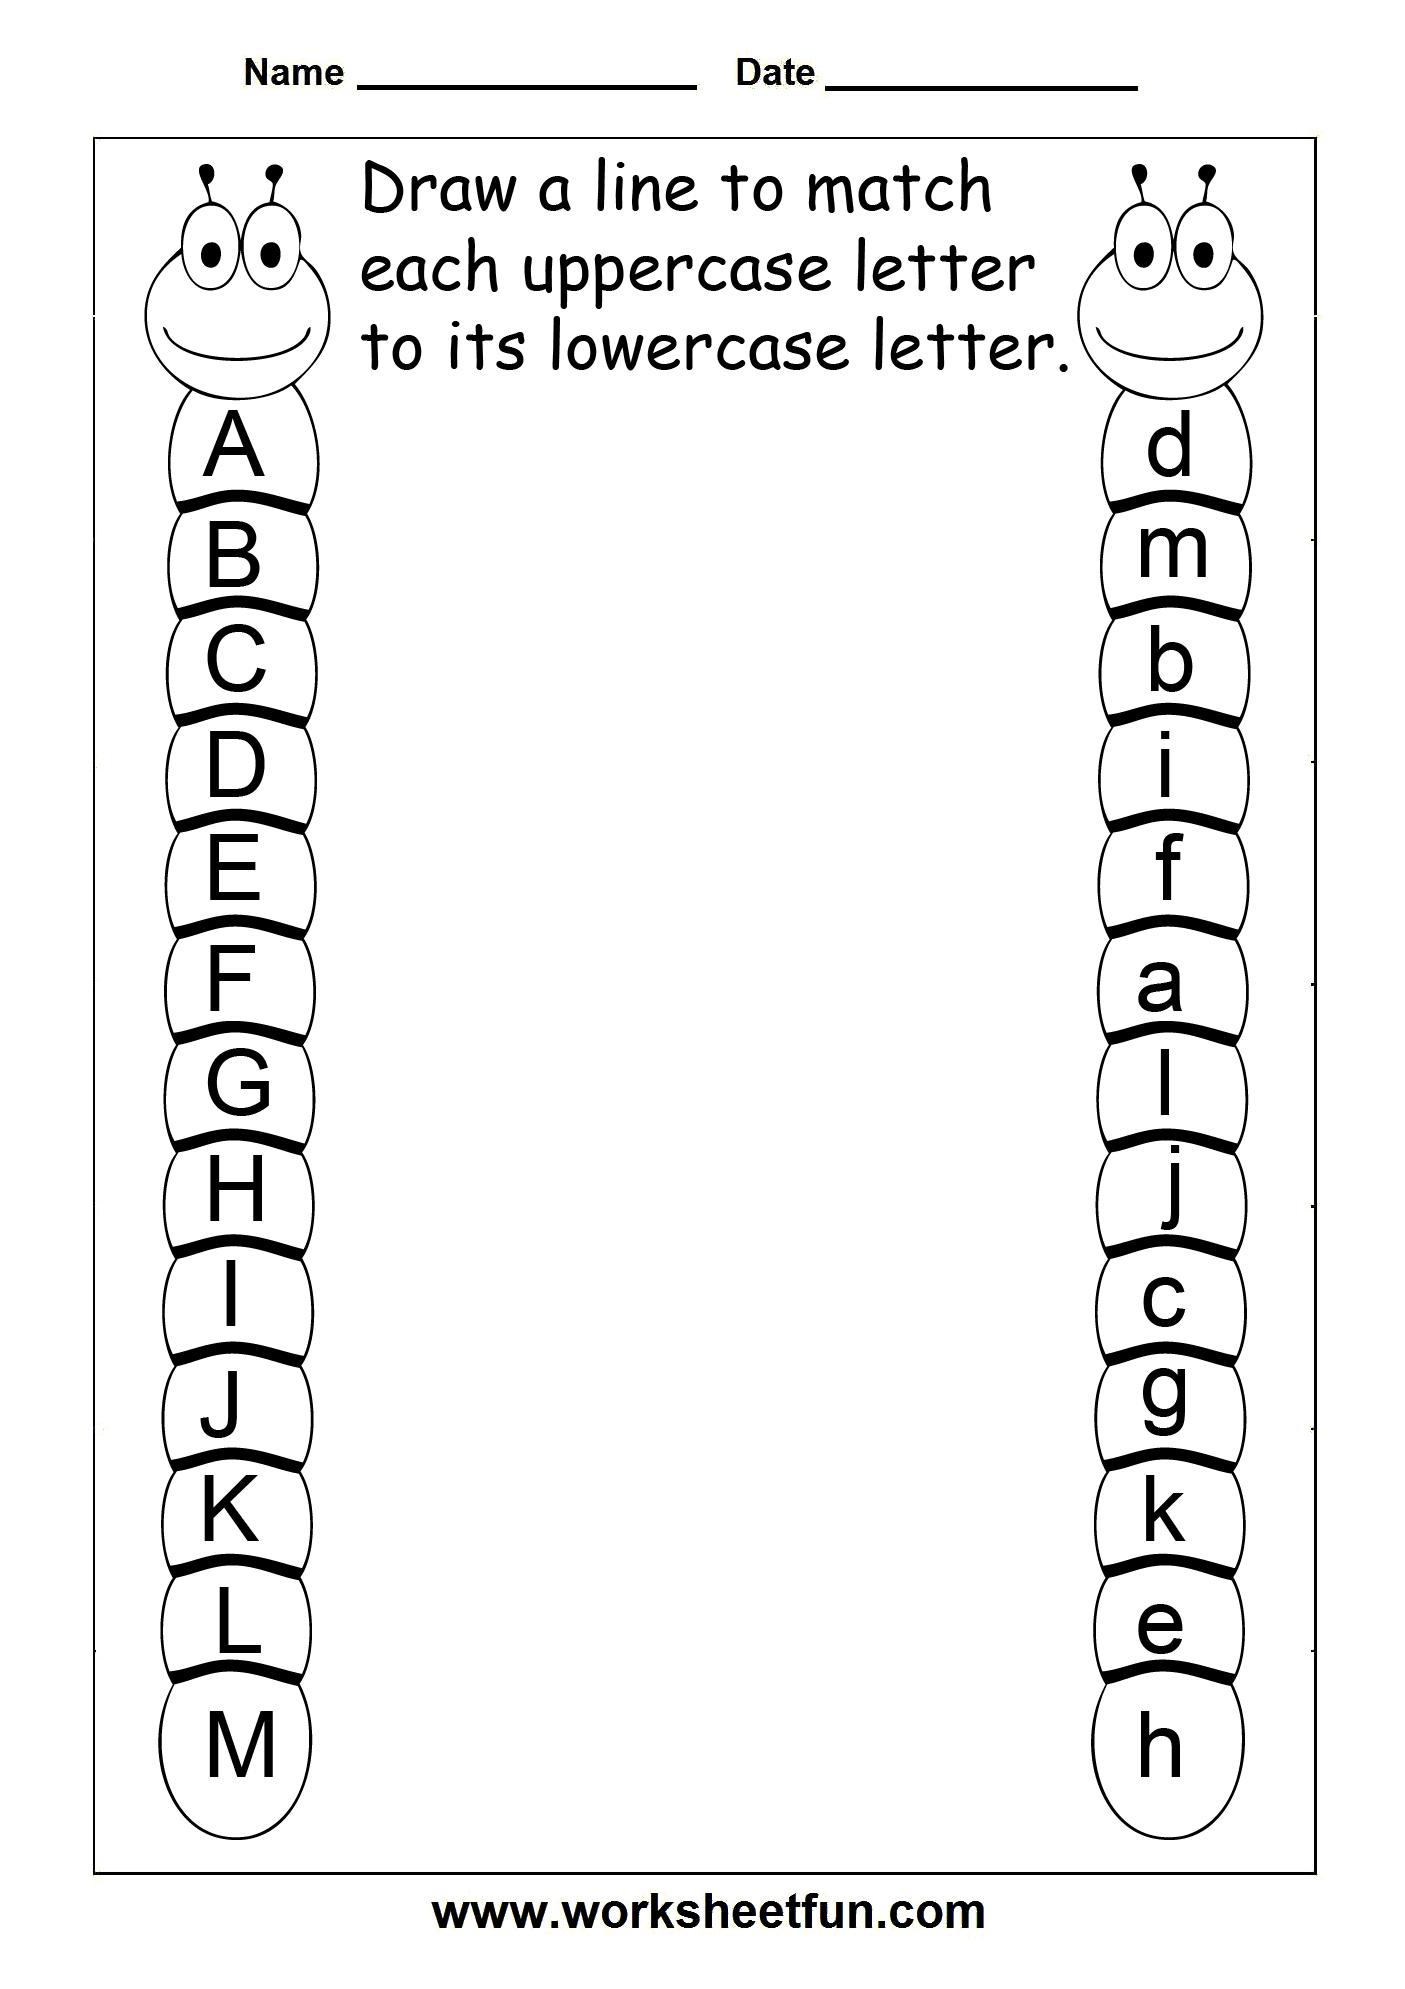 Weirdmailus  Marvelous  Images About Work Worksheet On Pinterest  Hidden Pictures  With Luxury  Images About Work Worksheet On Pinterest  Hidden Pictures Color By Numbers And Puzzles With Astounding Goldilocks And The Three Bears Sequencing Worksheets Also Joint Handwriting Worksheets In Addition French Adjective Agreement Worksheet And Addition Worksheets Kindergarten Free Printables As Well As French Verb Practice Worksheets Additionally Handwriting Worksheets For Kids Free From Pinterestcom With Weirdmailus  Luxury  Images About Work Worksheet On Pinterest  Hidden Pictures  With Astounding  Images About Work Worksheet On Pinterest  Hidden Pictures Color By Numbers And Puzzles And Marvelous Goldilocks And The Three Bears Sequencing Worksheets Also Joint Handwriting Worksheets In Addition French Adjective Agreement Worksheet From Pinterestcom